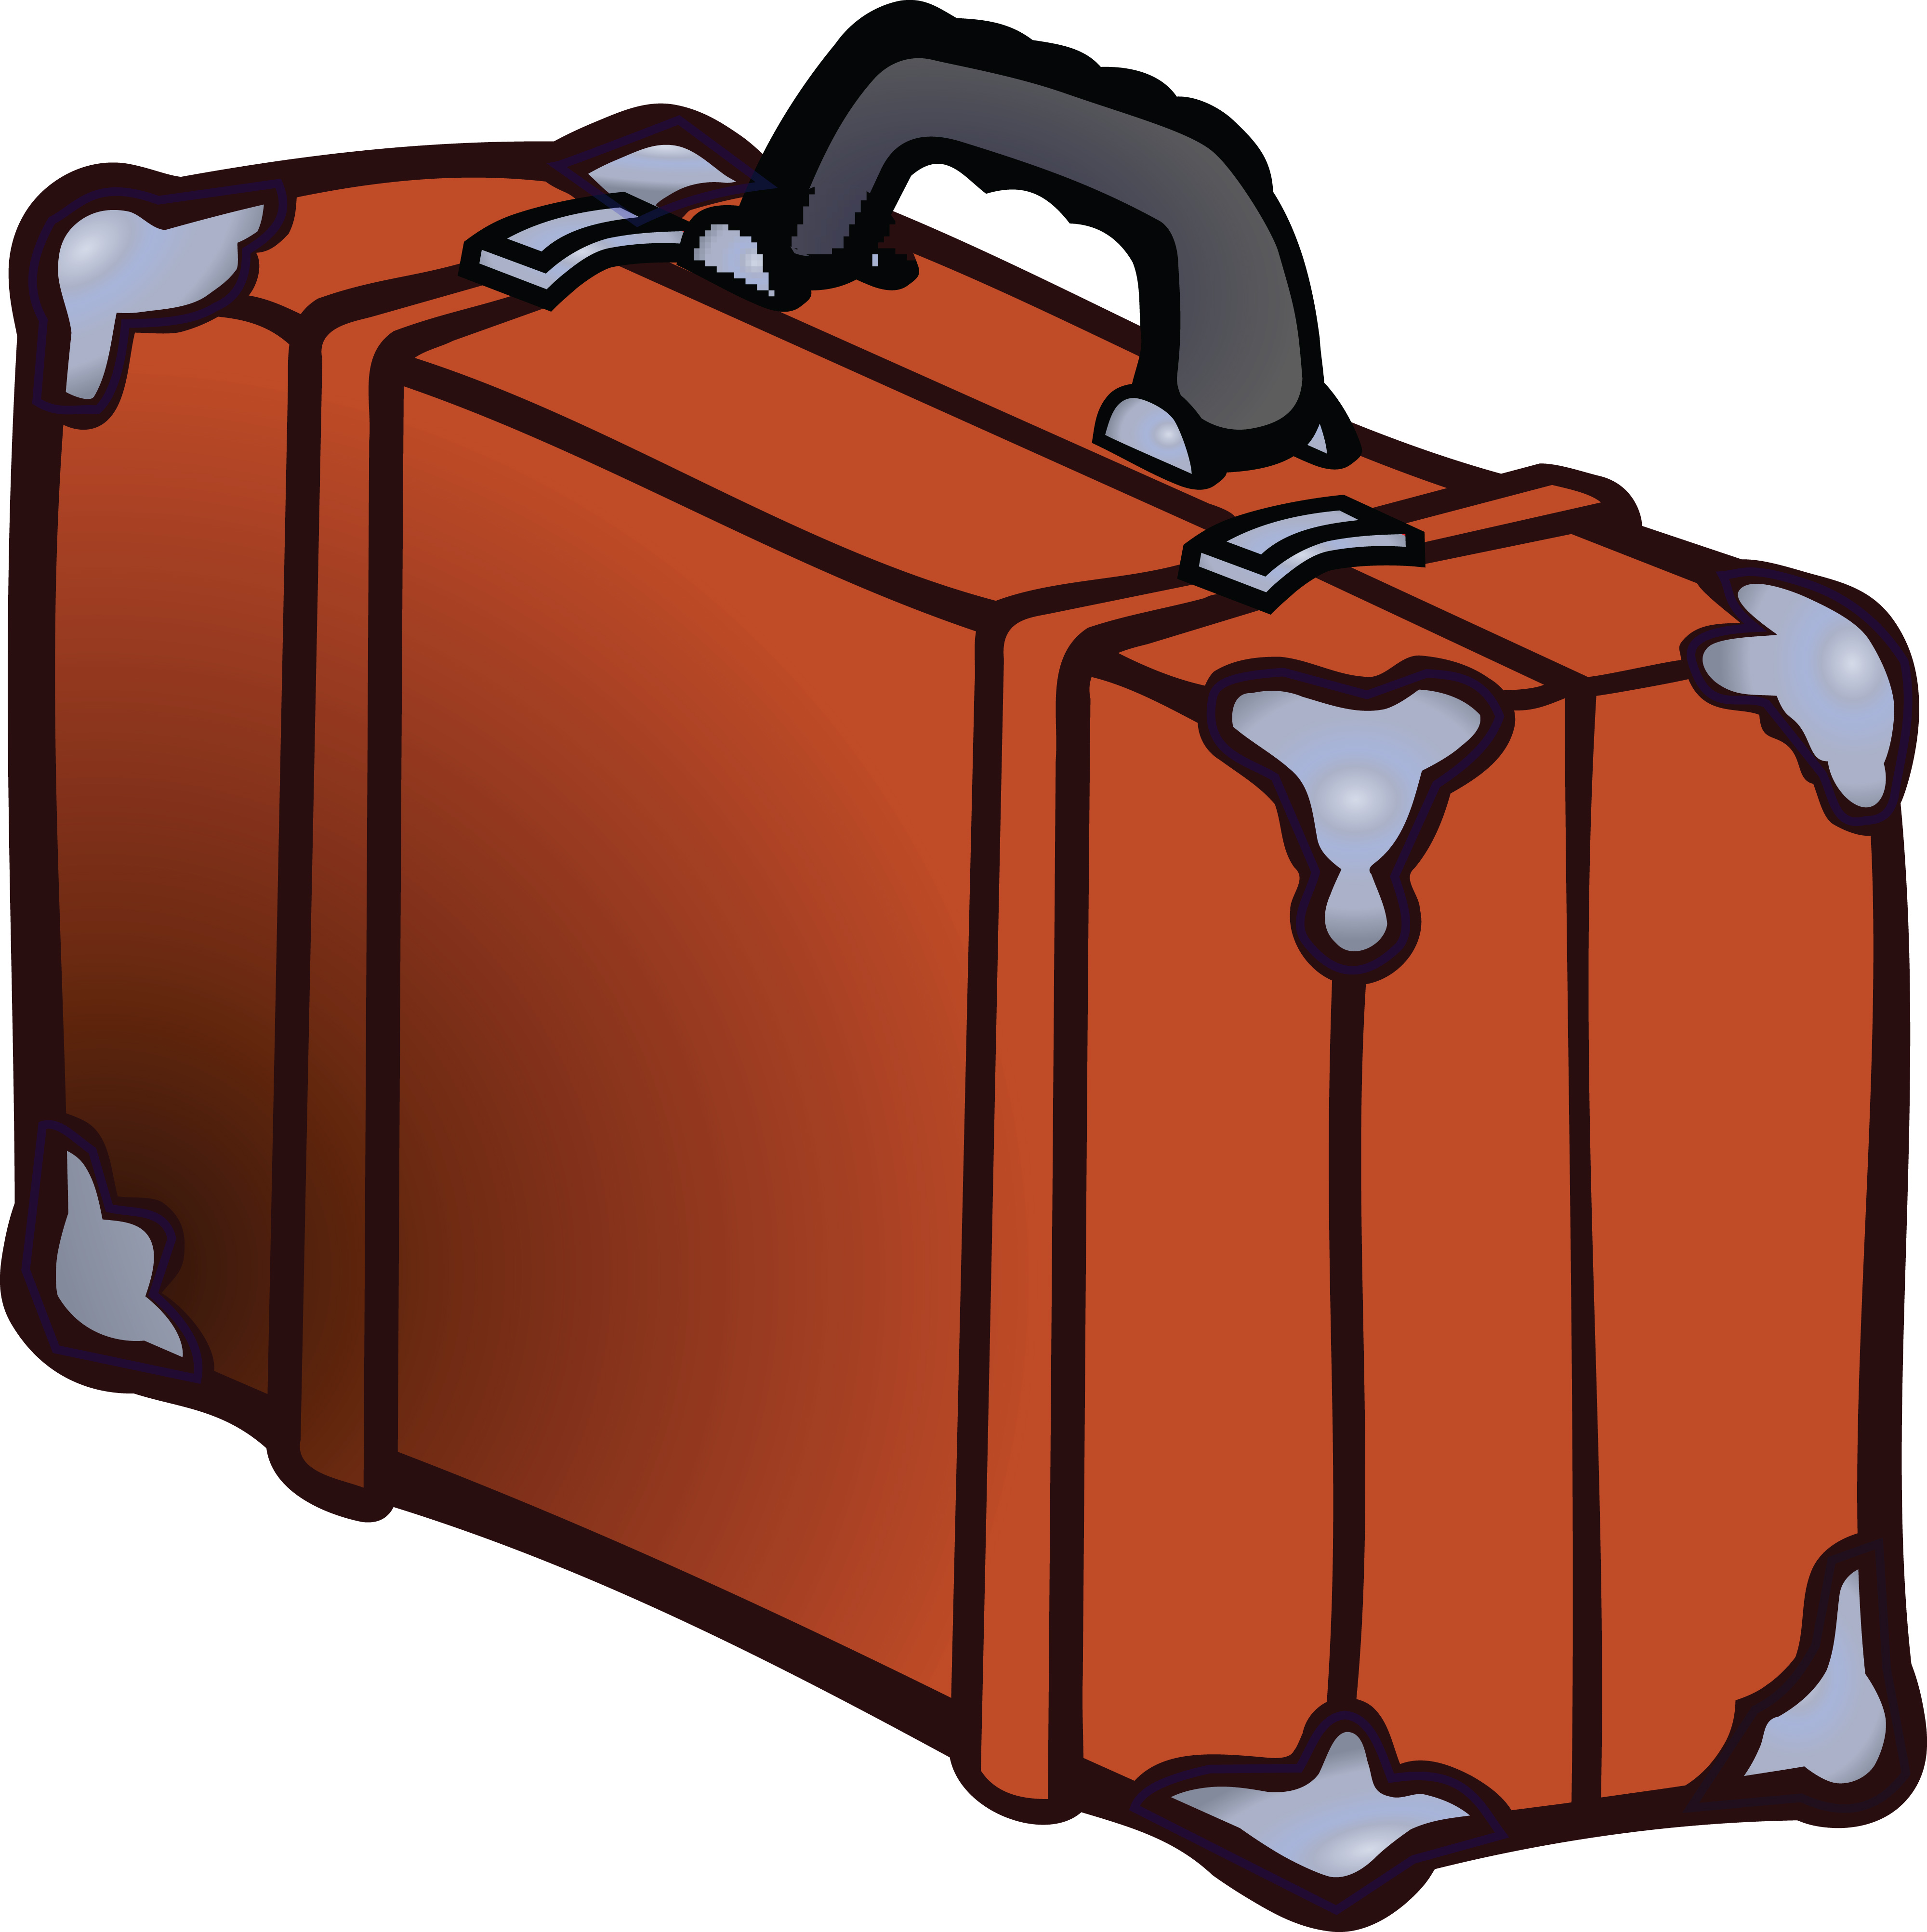 4000x4011 Free Clipart Of A Suitcase